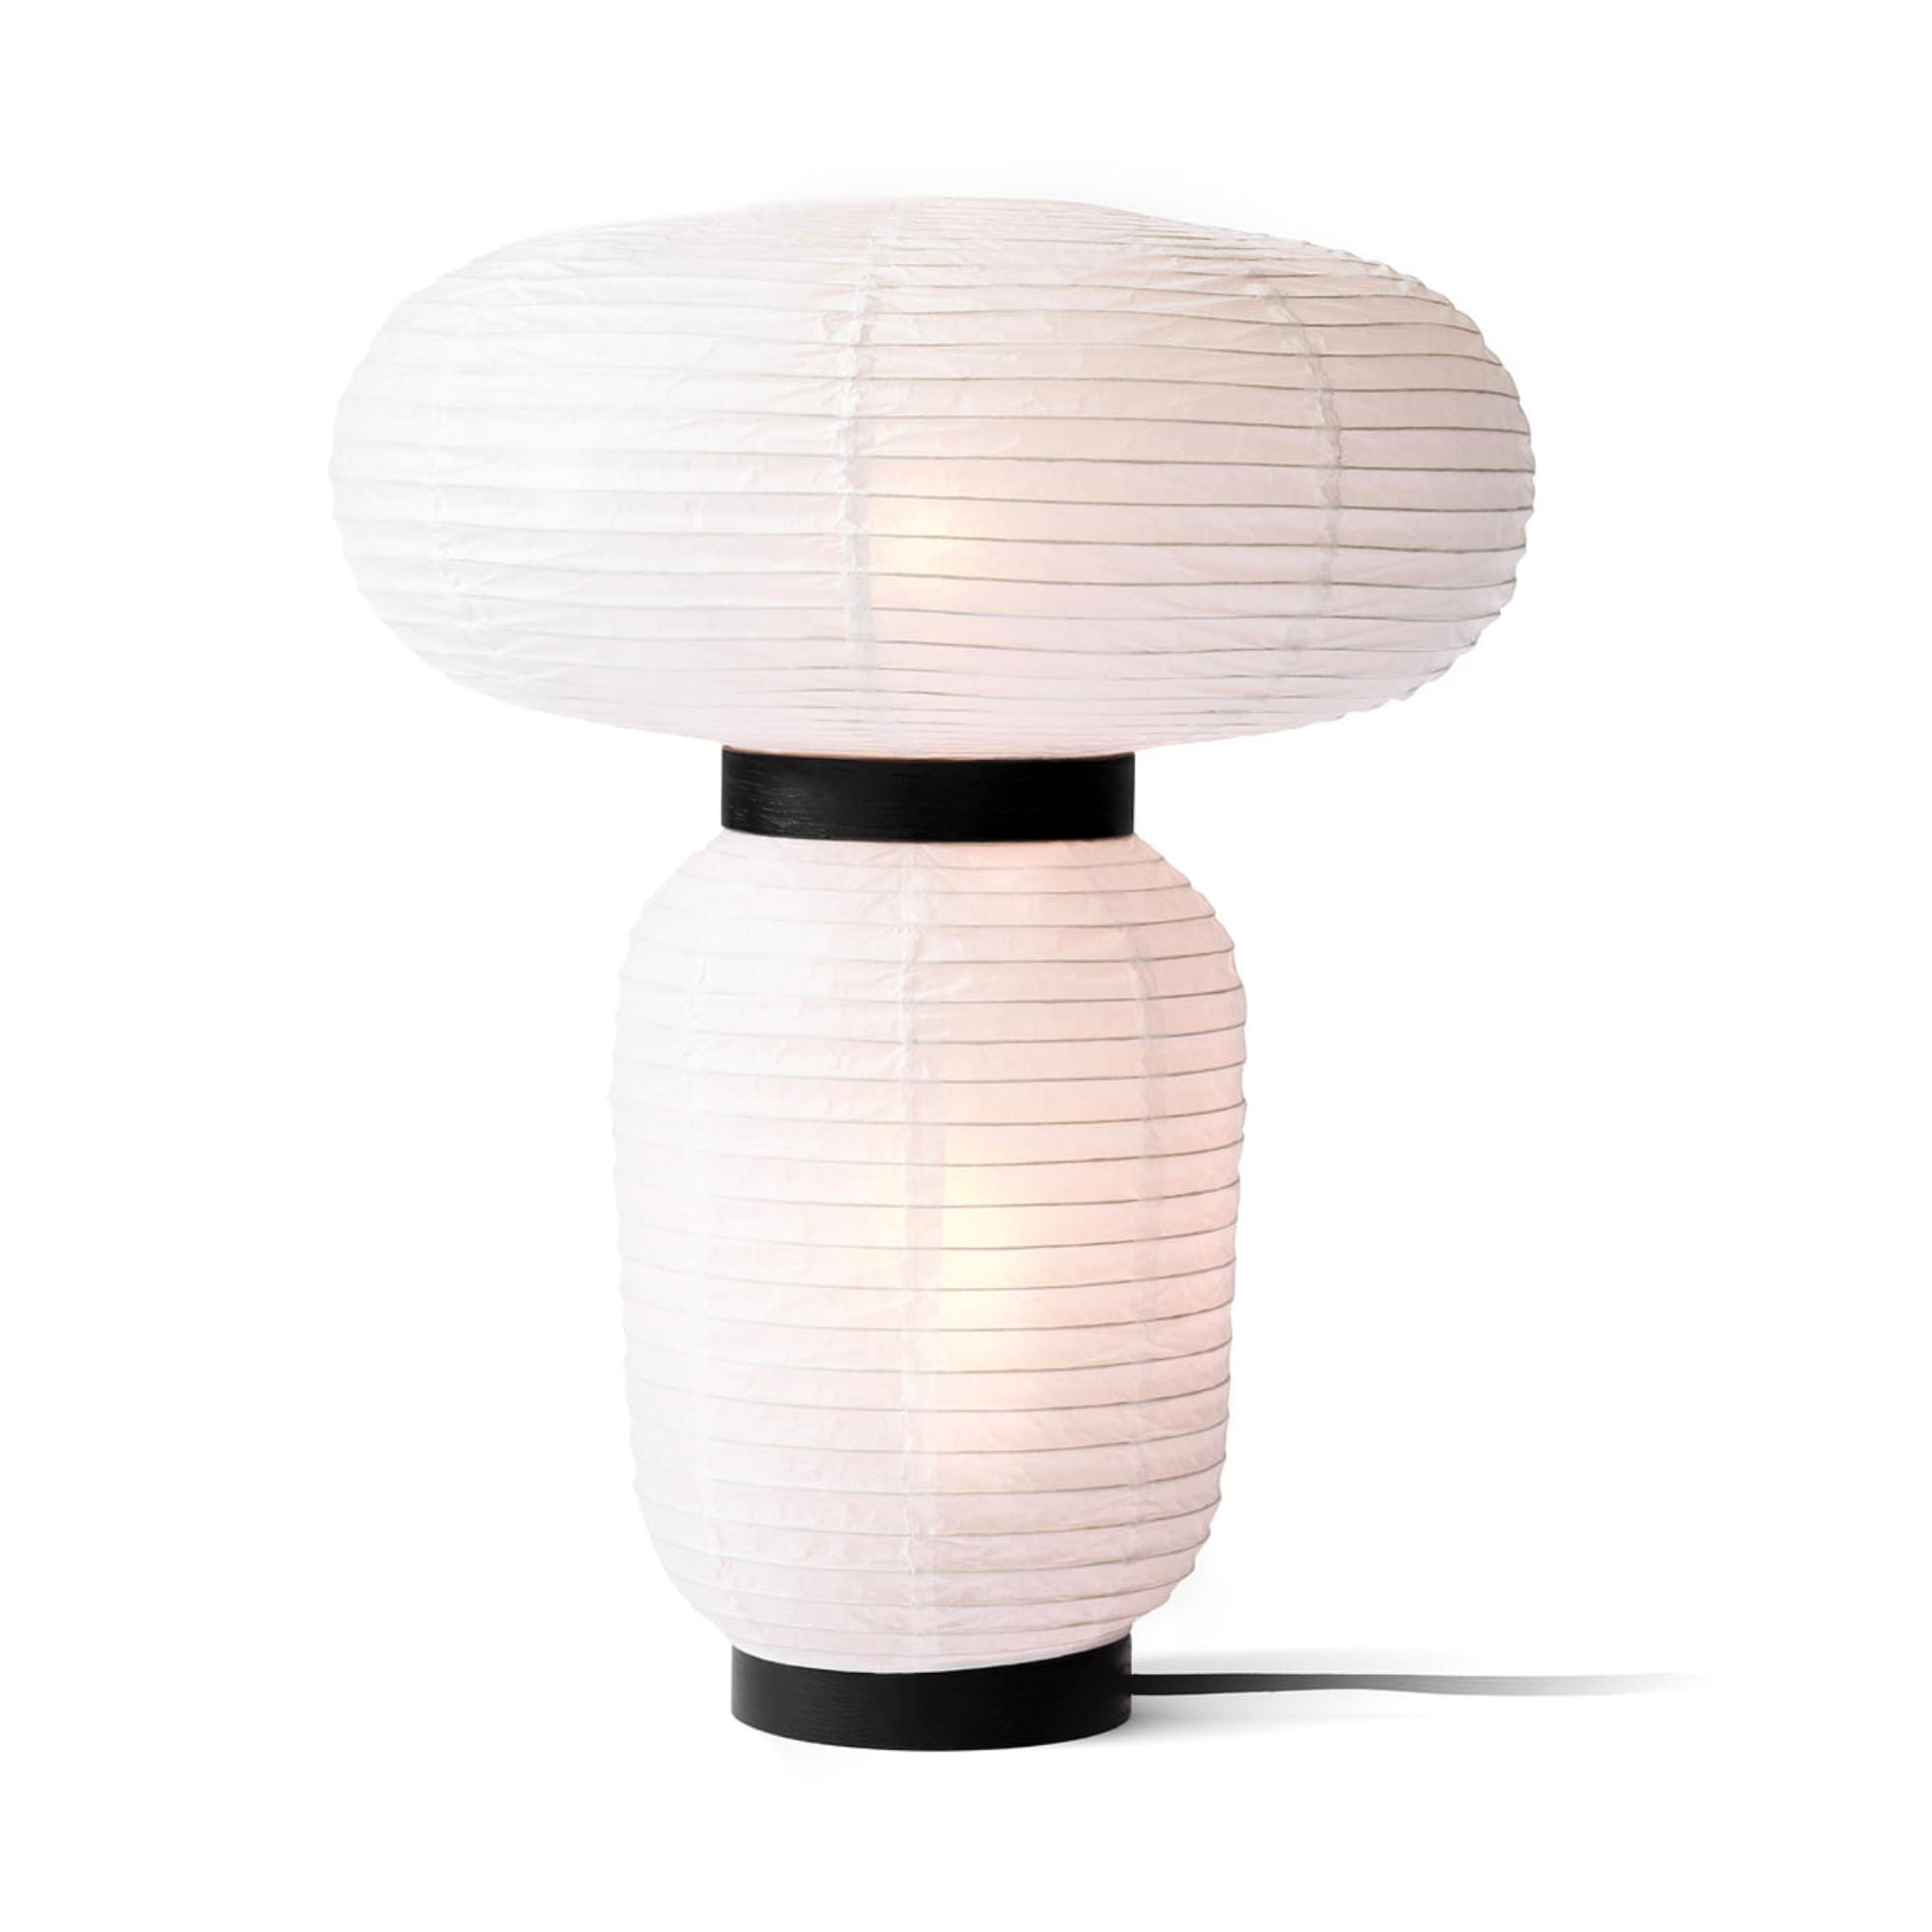 &Tradition JH18 Formakami table lamp